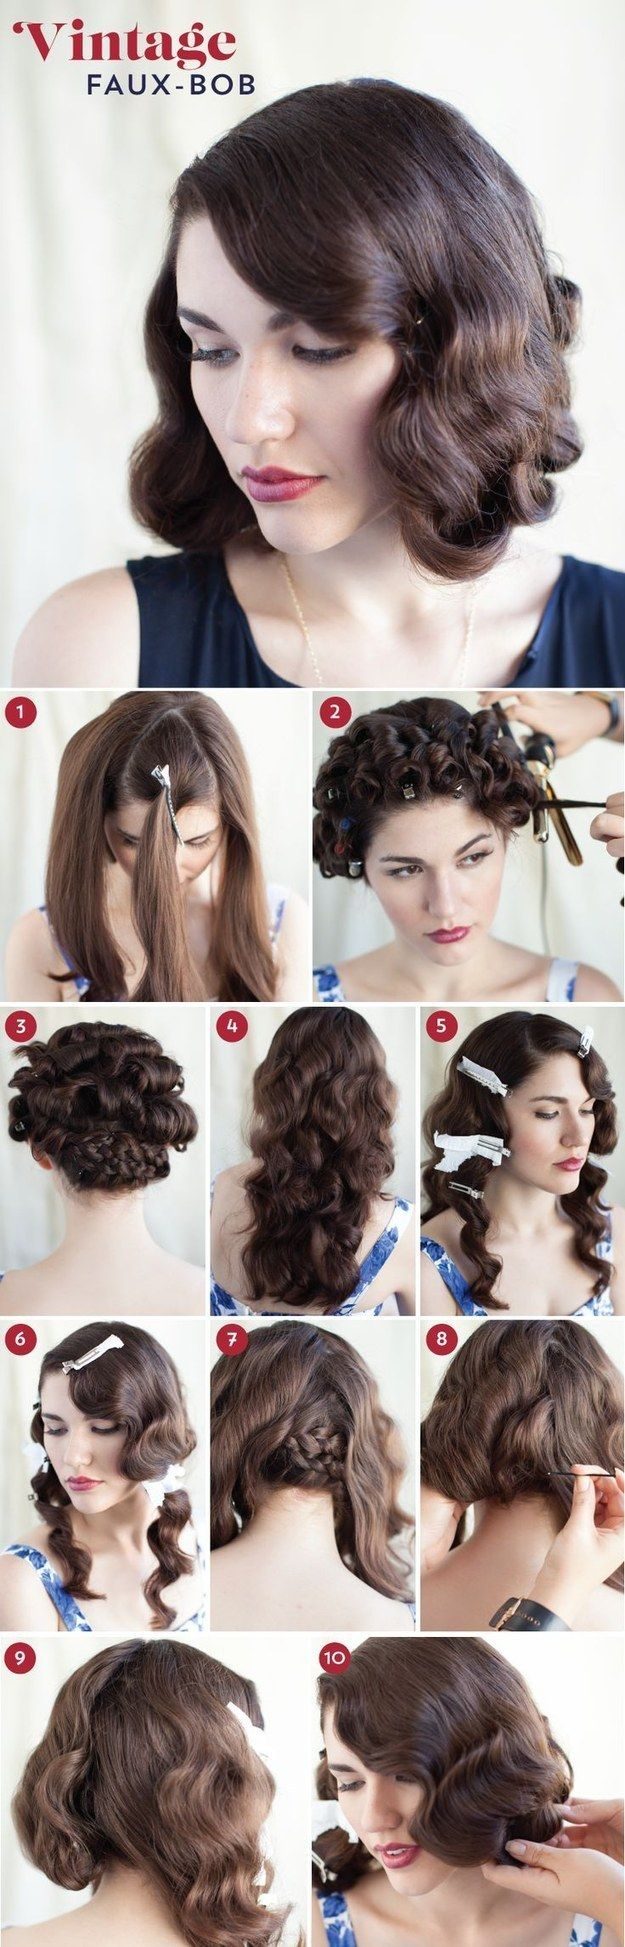 27 Gorgeously Dreamy Vintage Inspired Hair Tutorials Hair Styles Vintage Hairstyles Tutorial Vintage Hairstyles